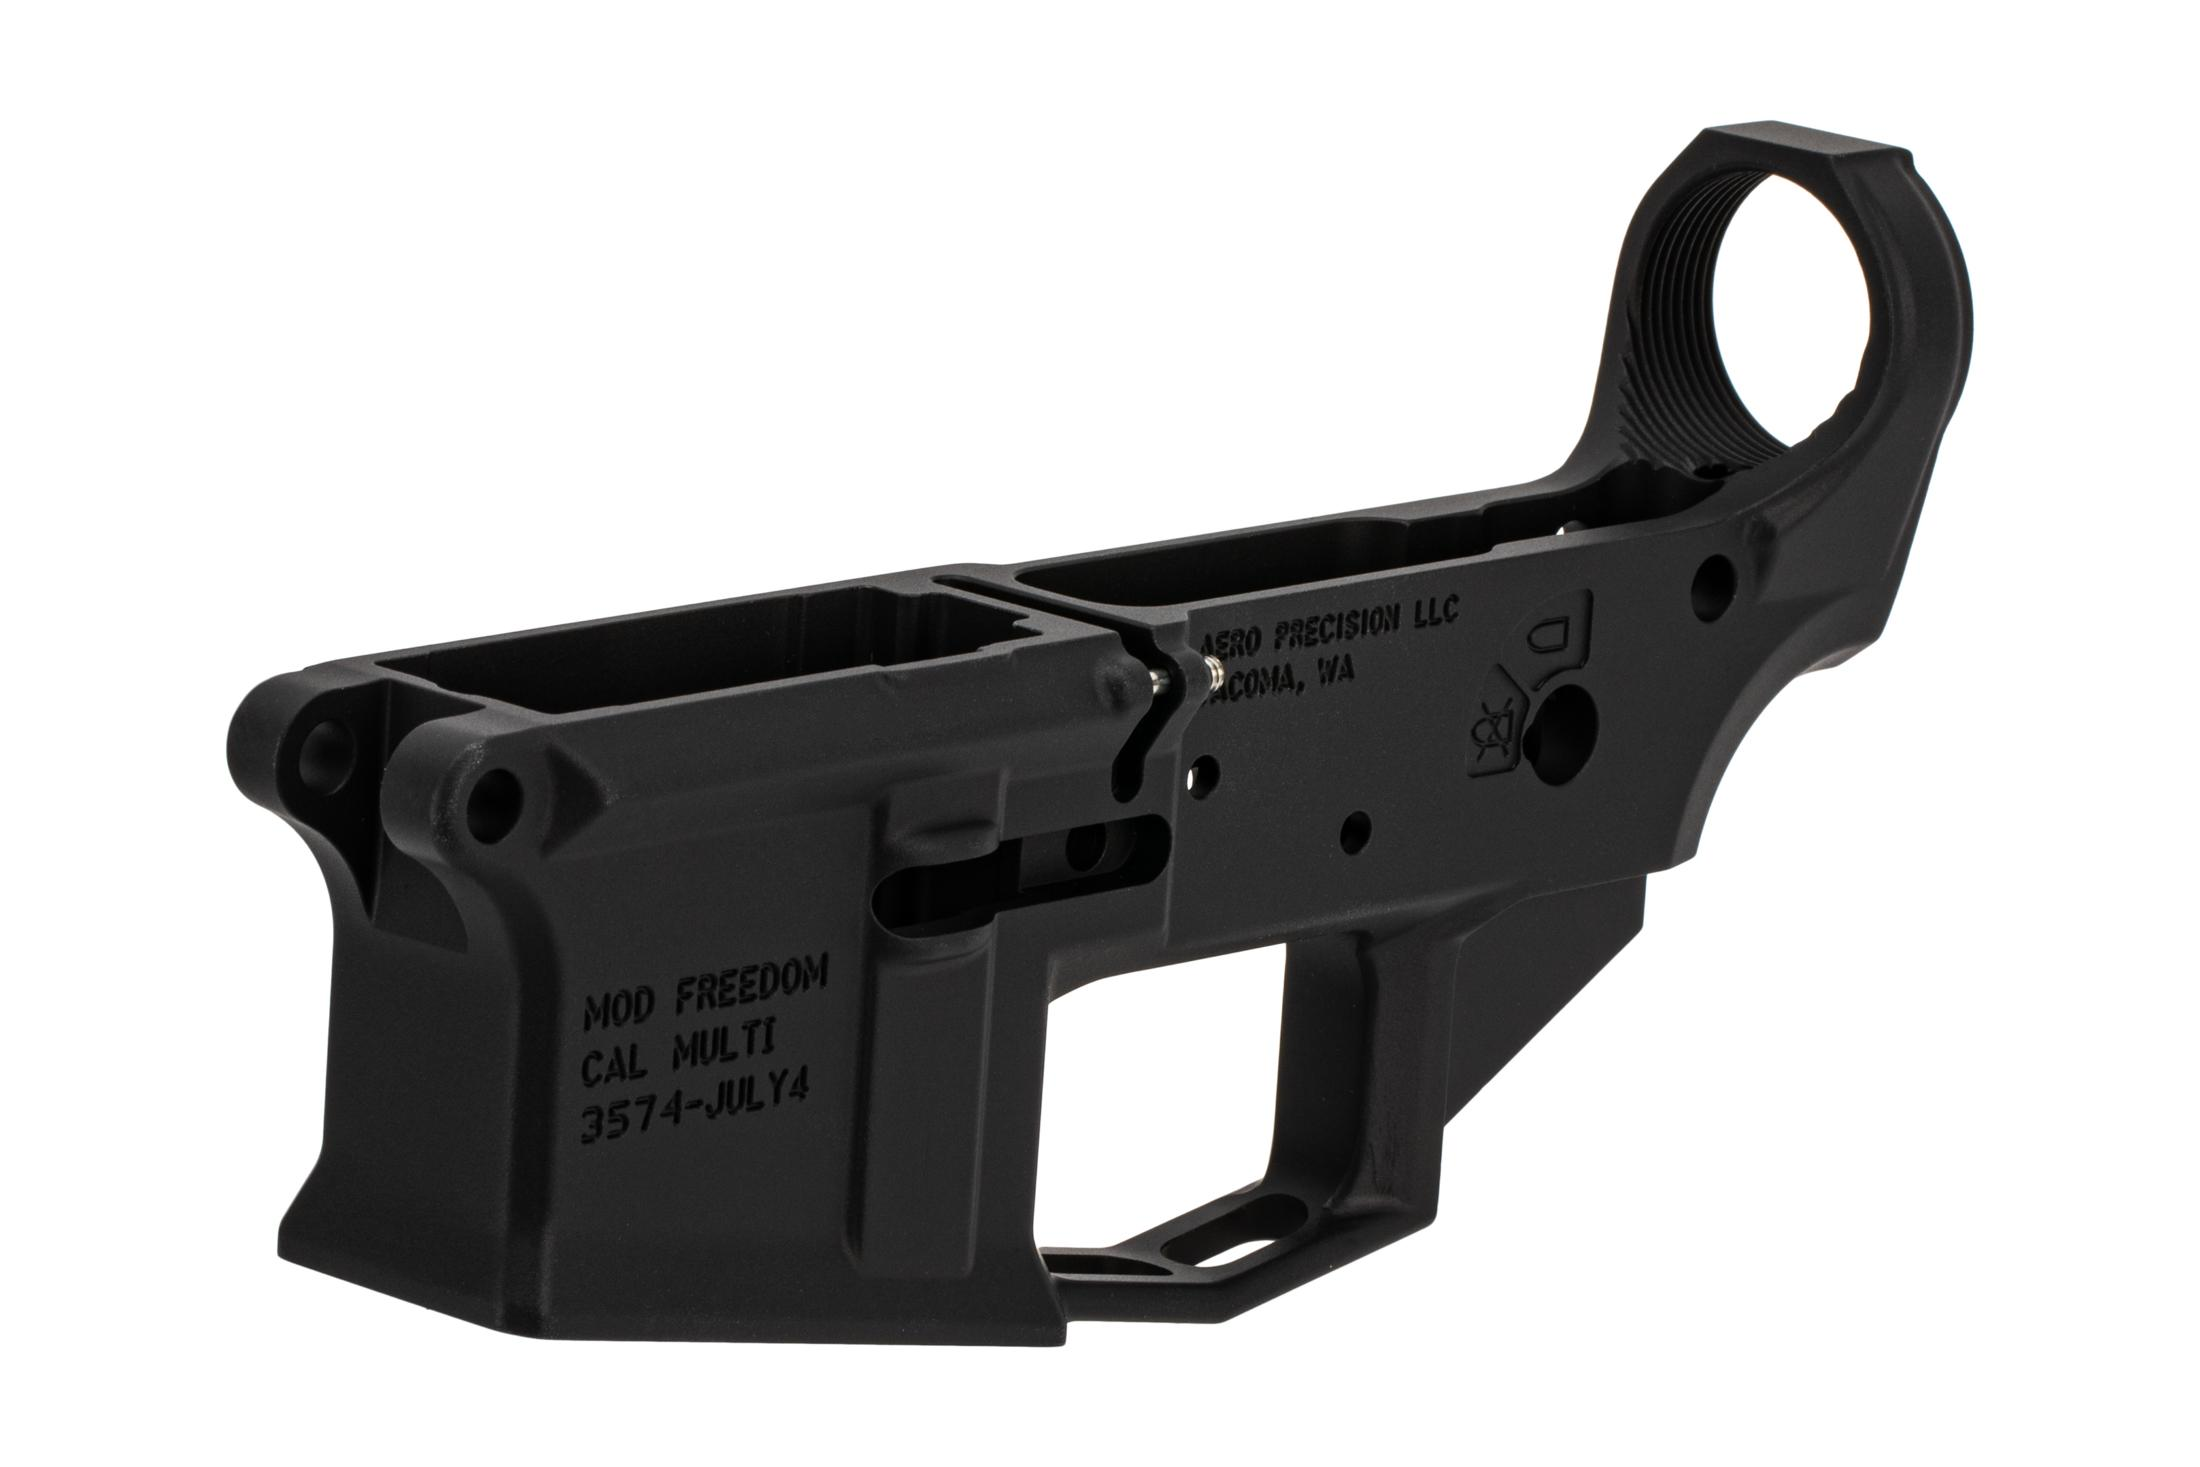 Aero Precision black M4E1 stripped special edition AR 15 lower receiver is compatible with most MIL-SPEC receivers and parts.